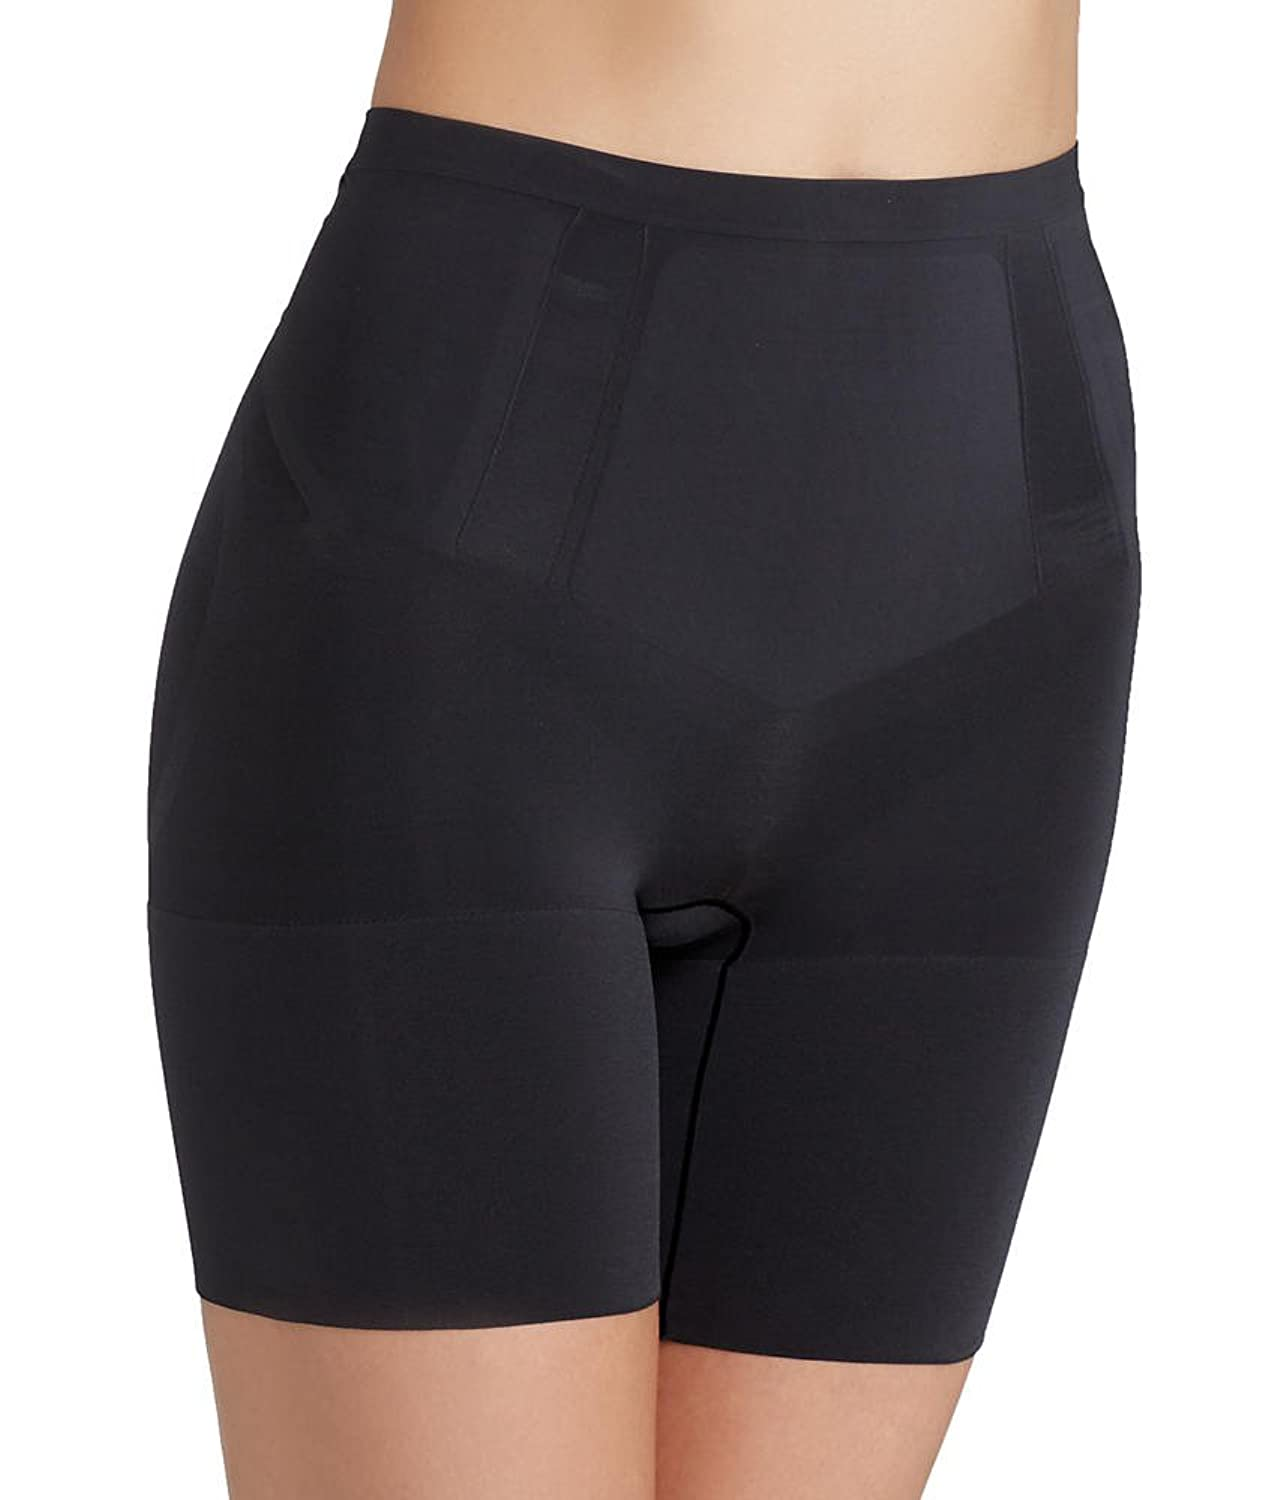 Spanx On Core Miederhose Damen